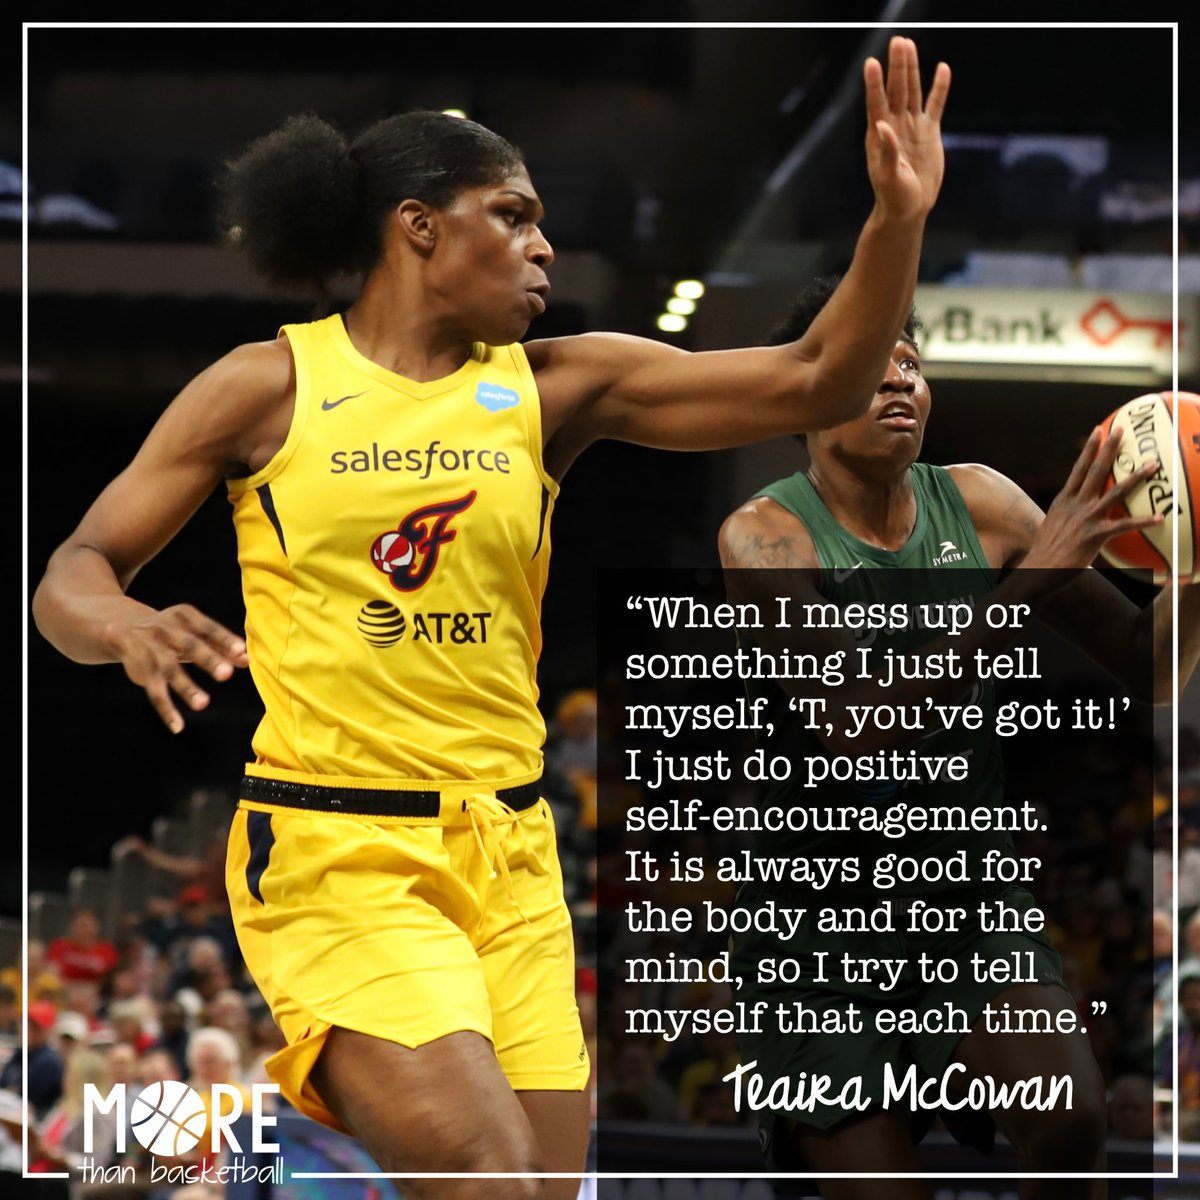 How does @Teaira_15 stay focused in a tough game when things aren't going well? Positive self-talk, one possession at a time. 💪🏾 . #indianafever #fever20 #allforlove